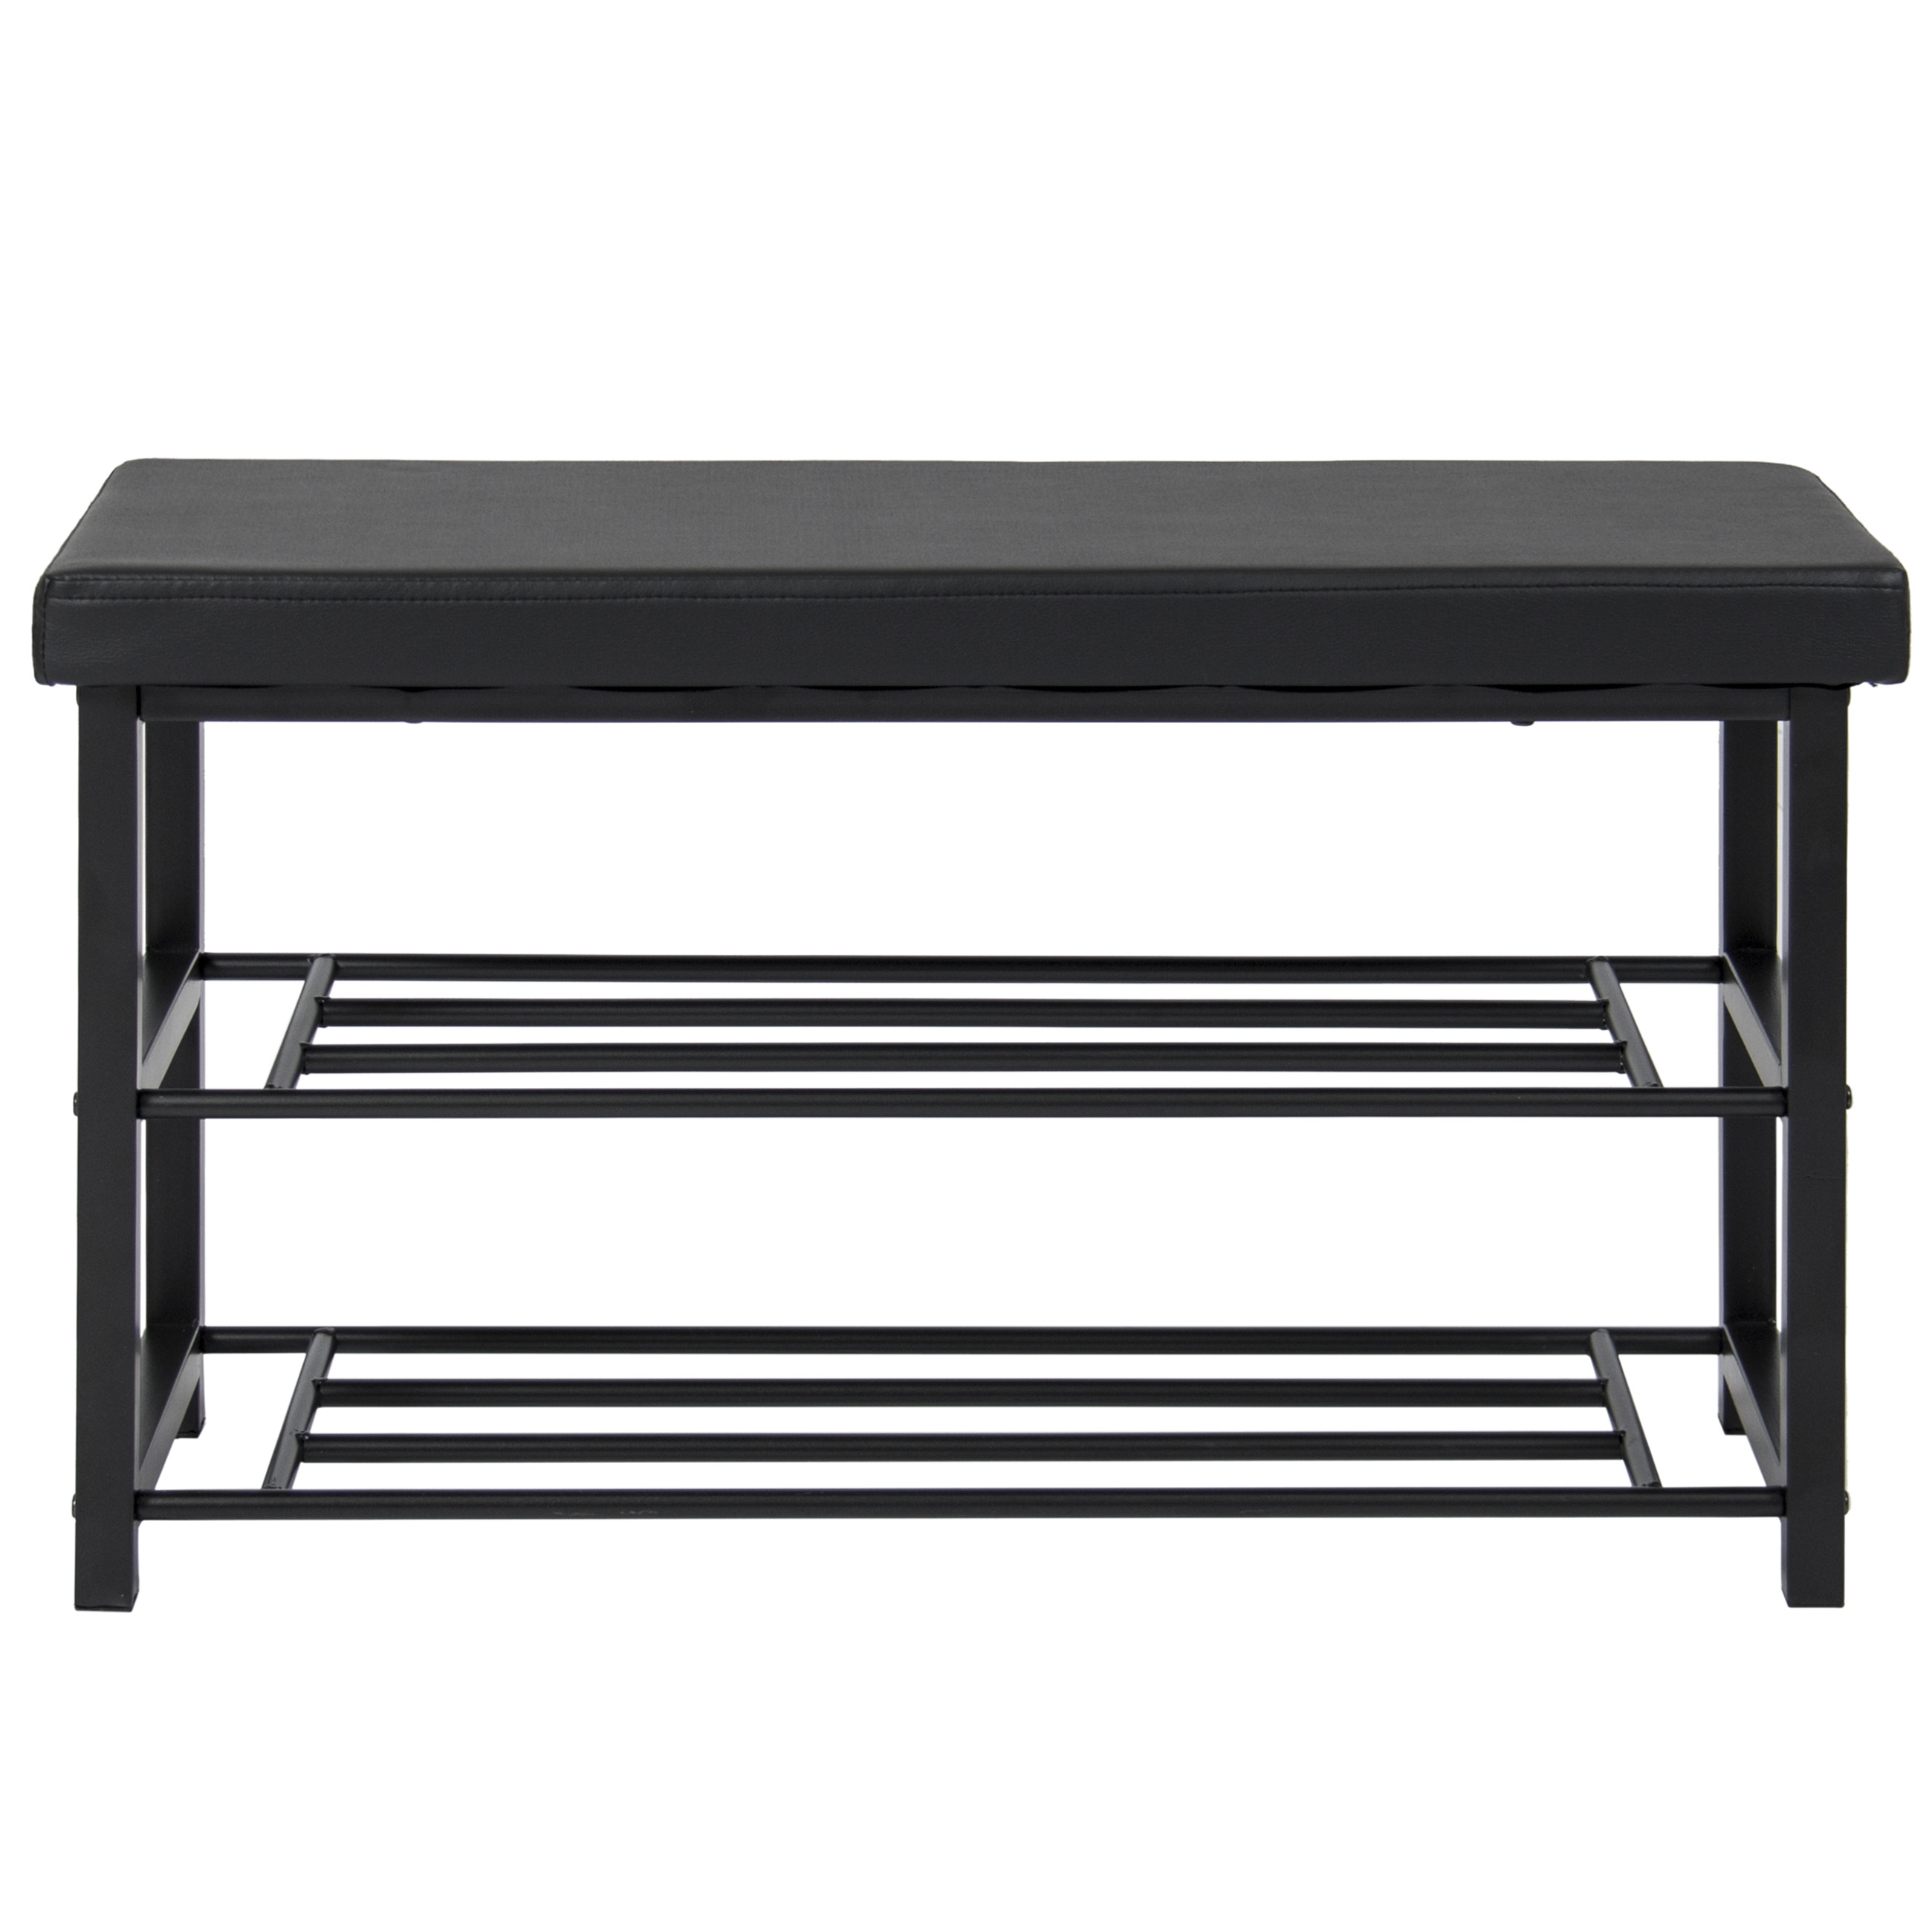 2 Tier Metal Storage Bench Shoe Rack Organize W Leather Top Black Ebay